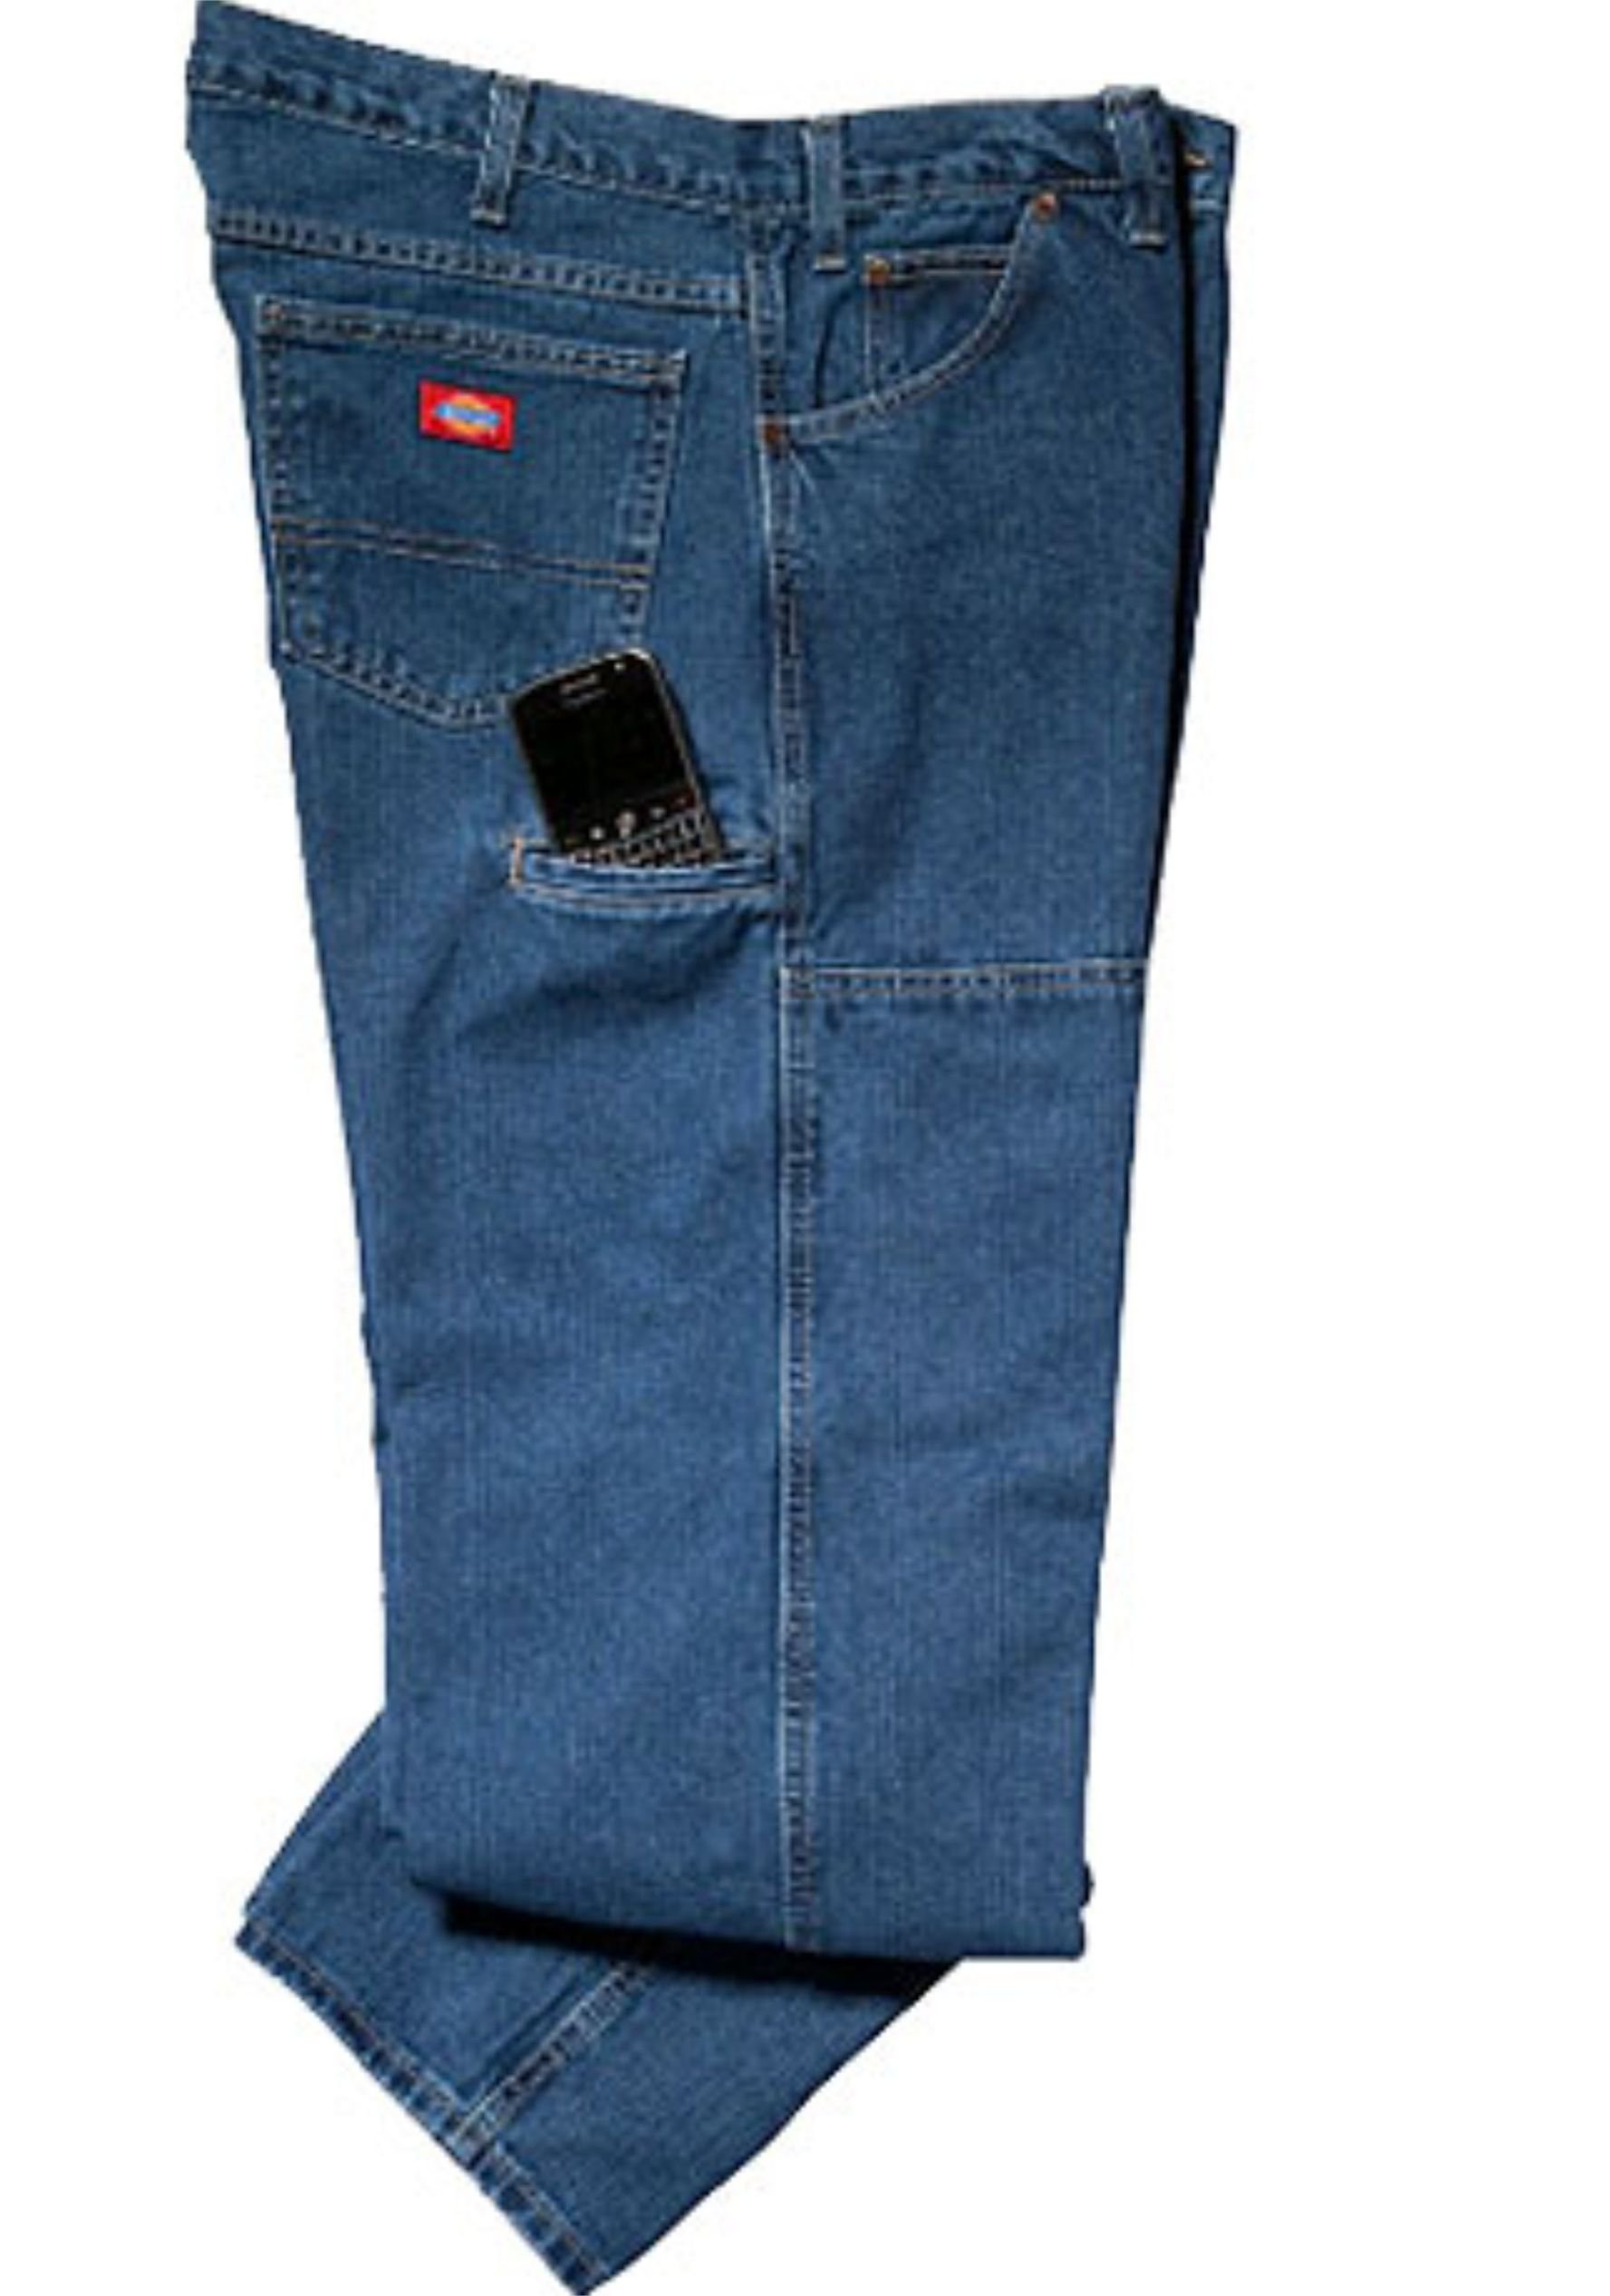 fe3f0bb36e6 Dickies Men s Relaxed-Fit Double-Knee Workhorse Jean - Denim Fit